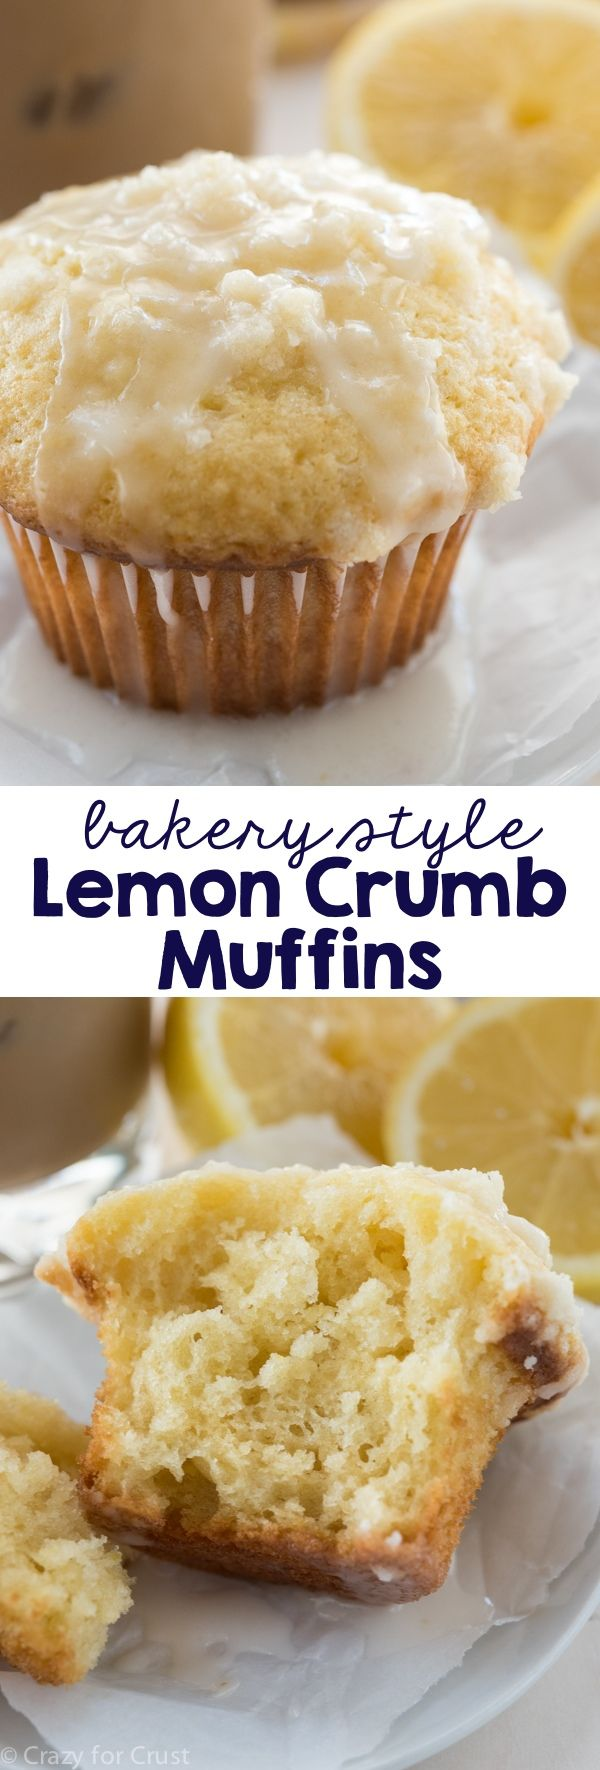 shoes for women Lemon Crumb Muffins - an easy recipe for breakfast! Lemon muffins with a crunchy crumble topping - better than a bakery! | Food - Muffins |  | Easy Re…